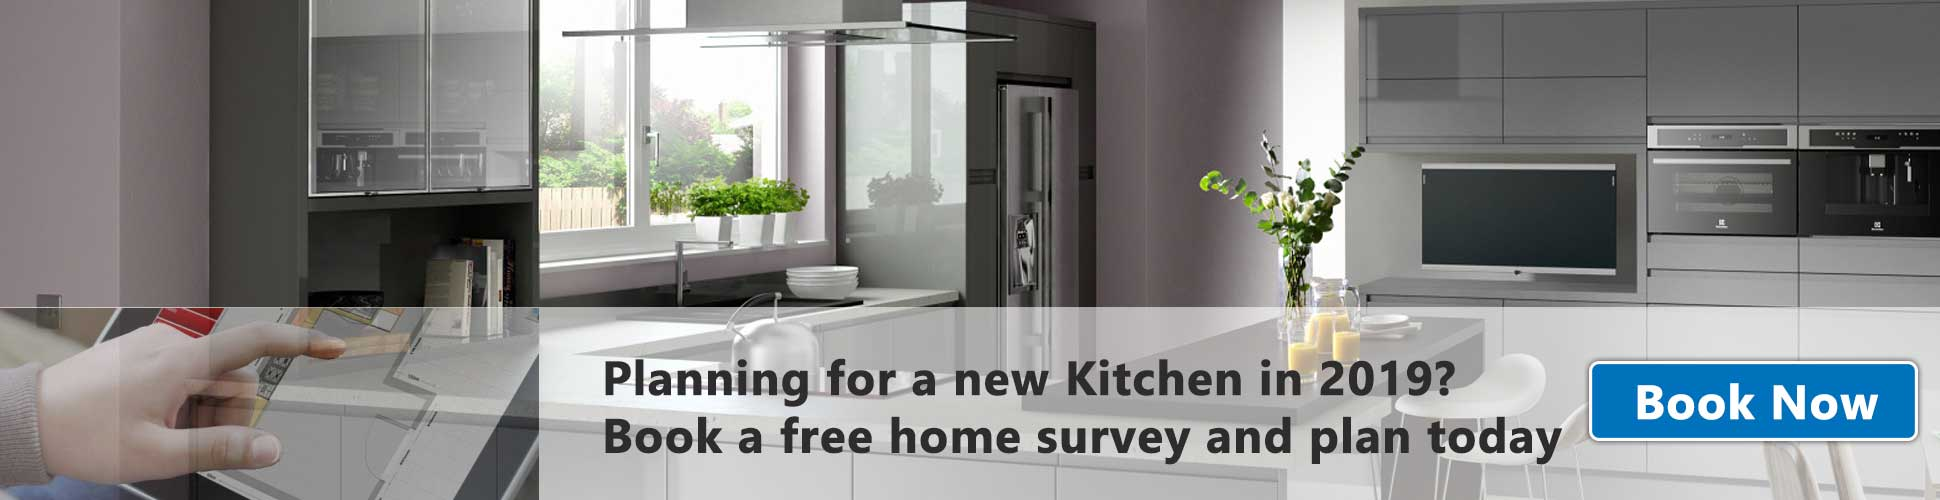 Canoock Kitchens - Book Survey